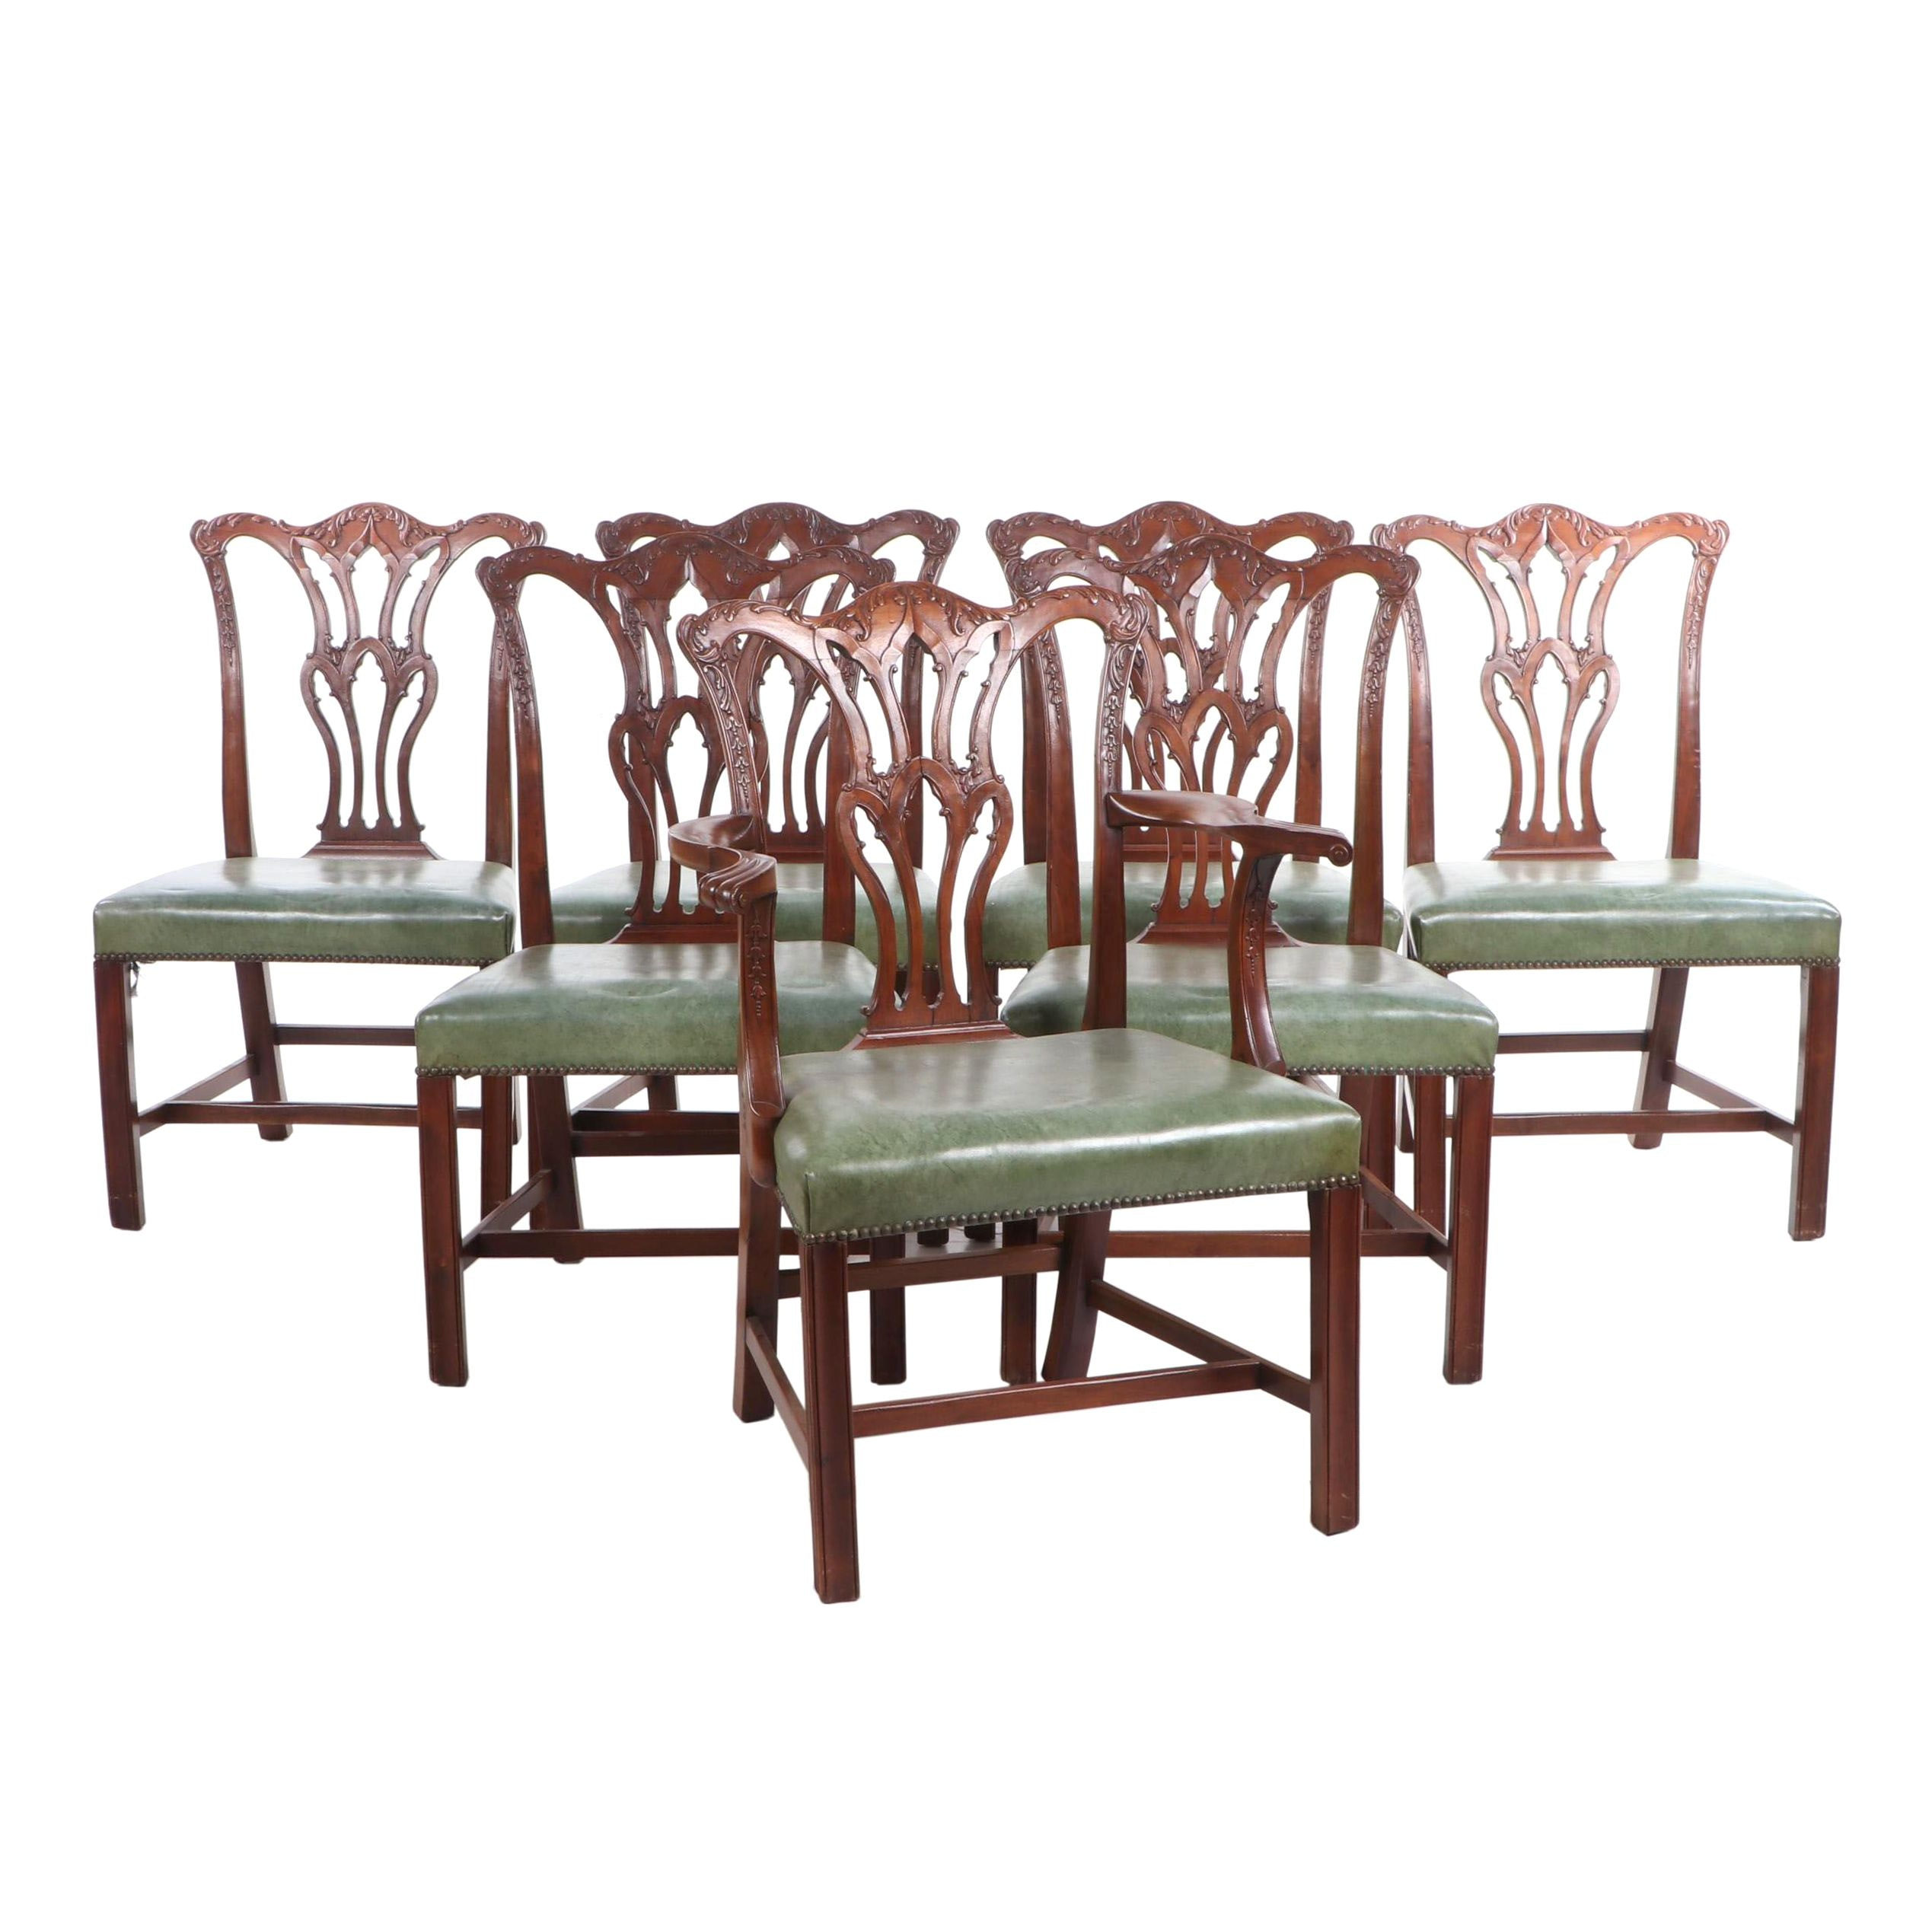 George III, Chippendale Style Mahogany Dining Chairs, Late 18th Century